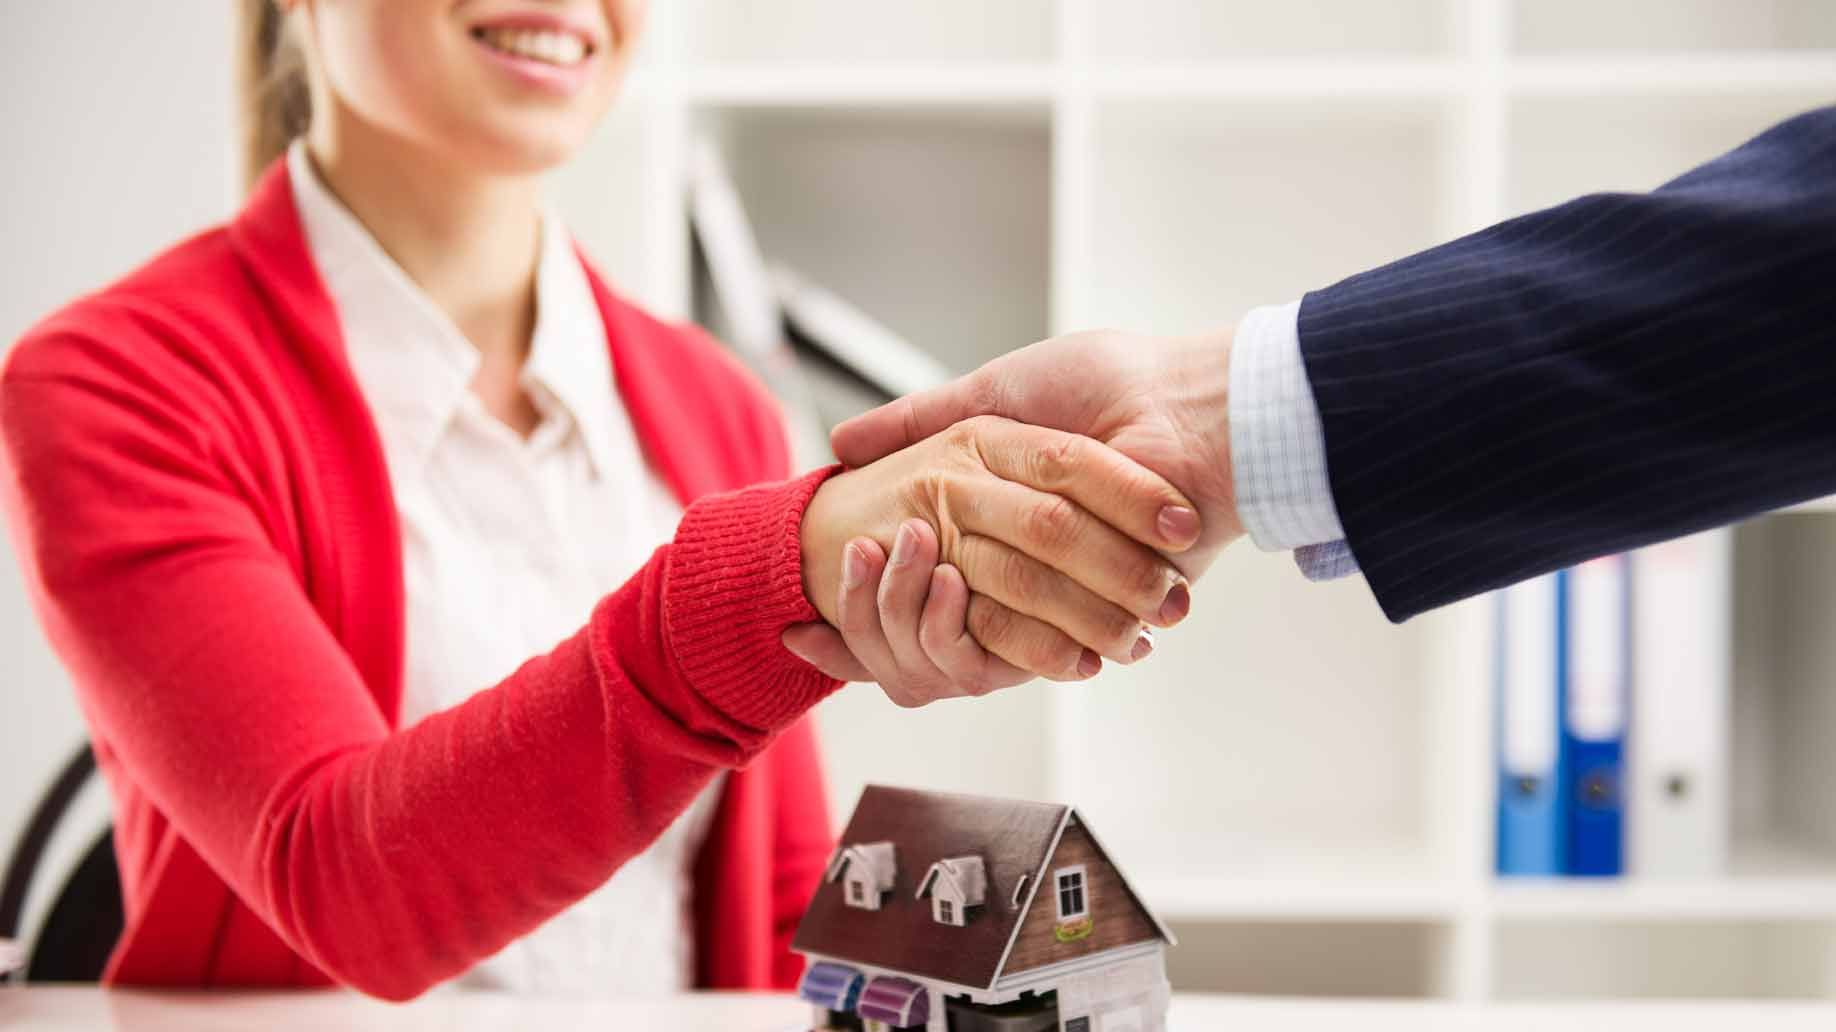 Realtor Homebuyer Handshake Agreement  Buying A Home